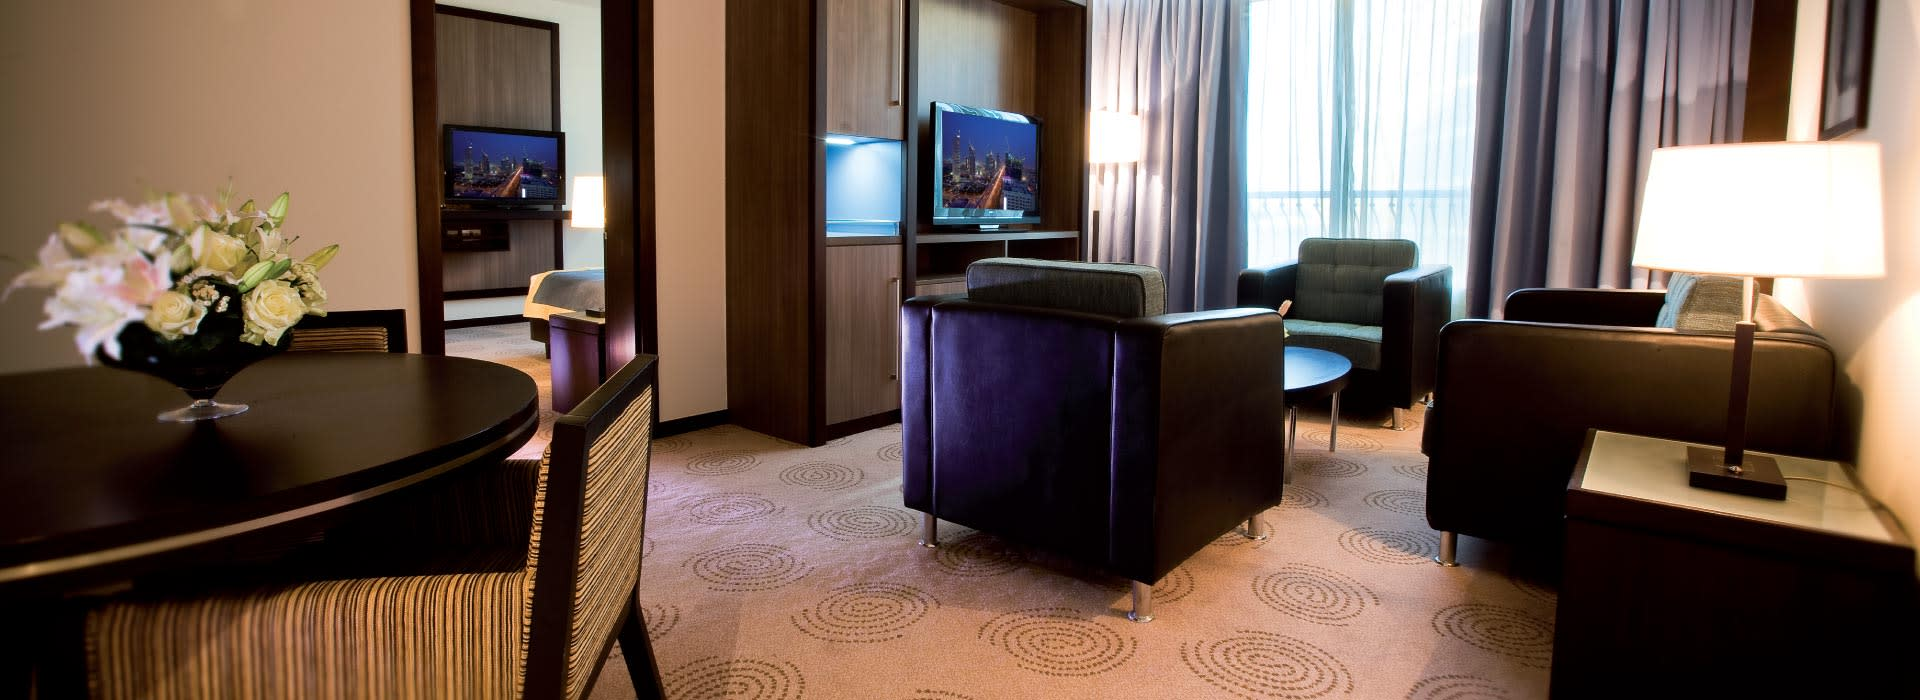 Executive room of a Business Hotel Dubai